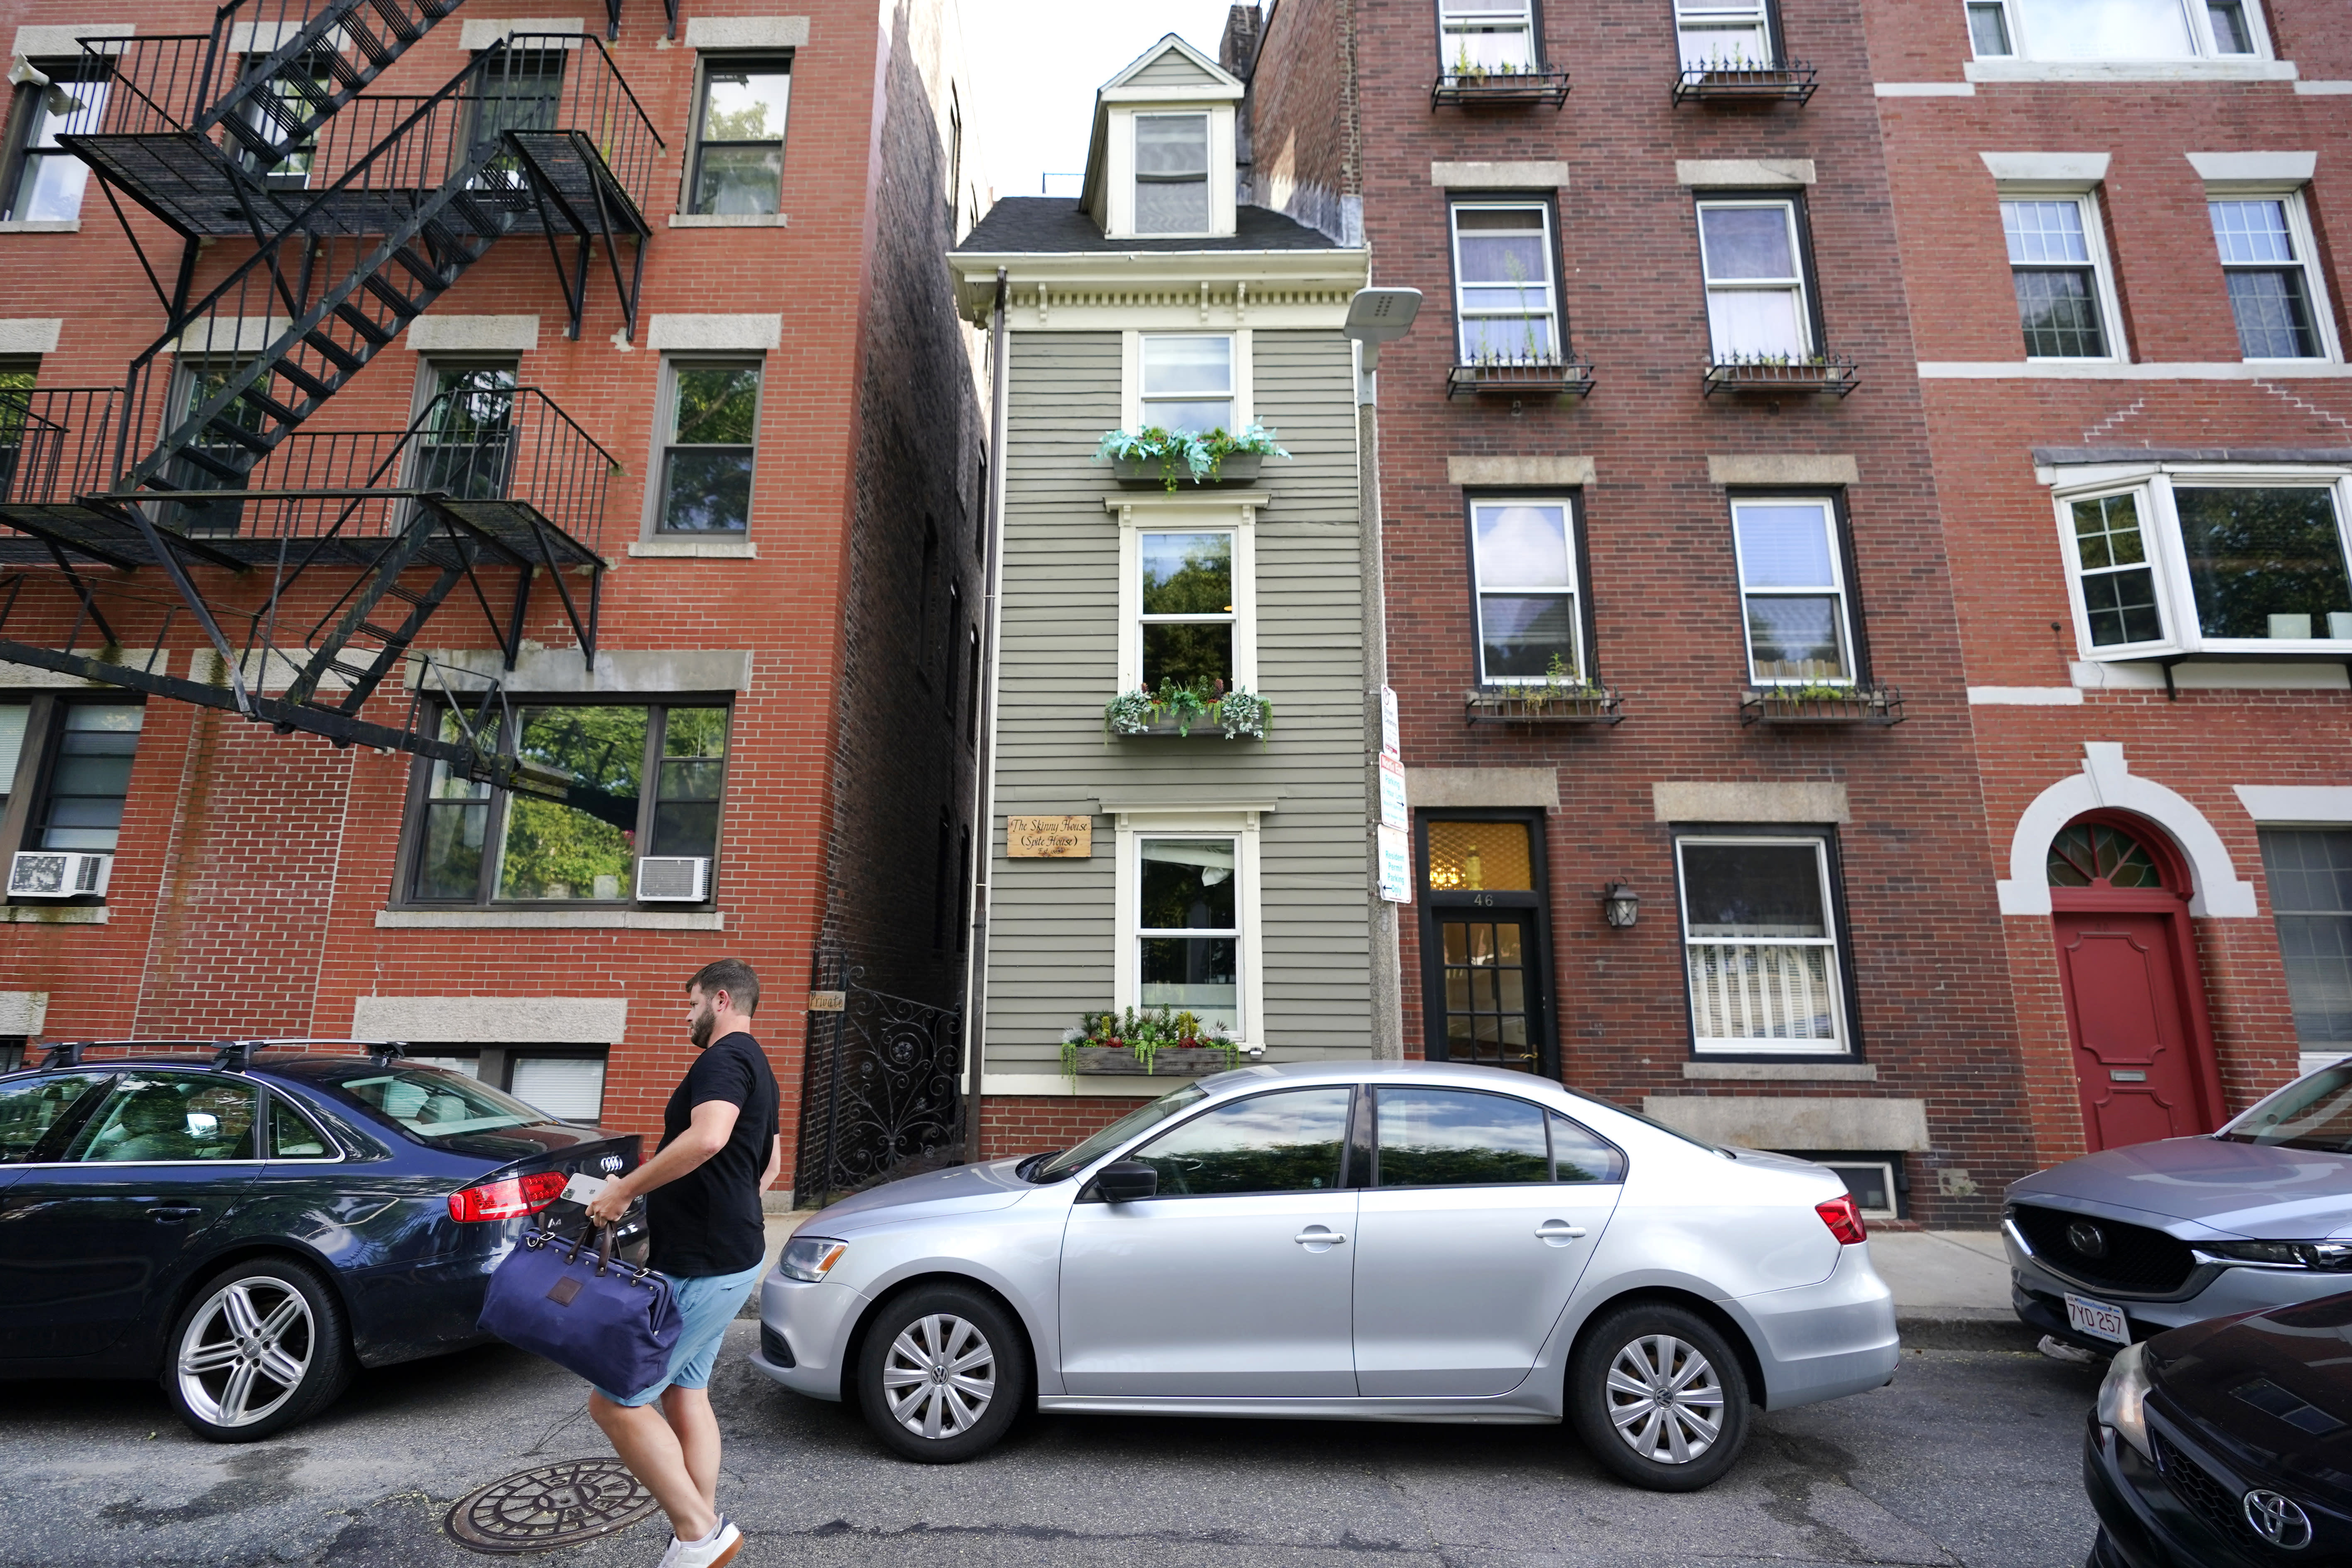 Boston's famous Skinny House sells for a nice fat price